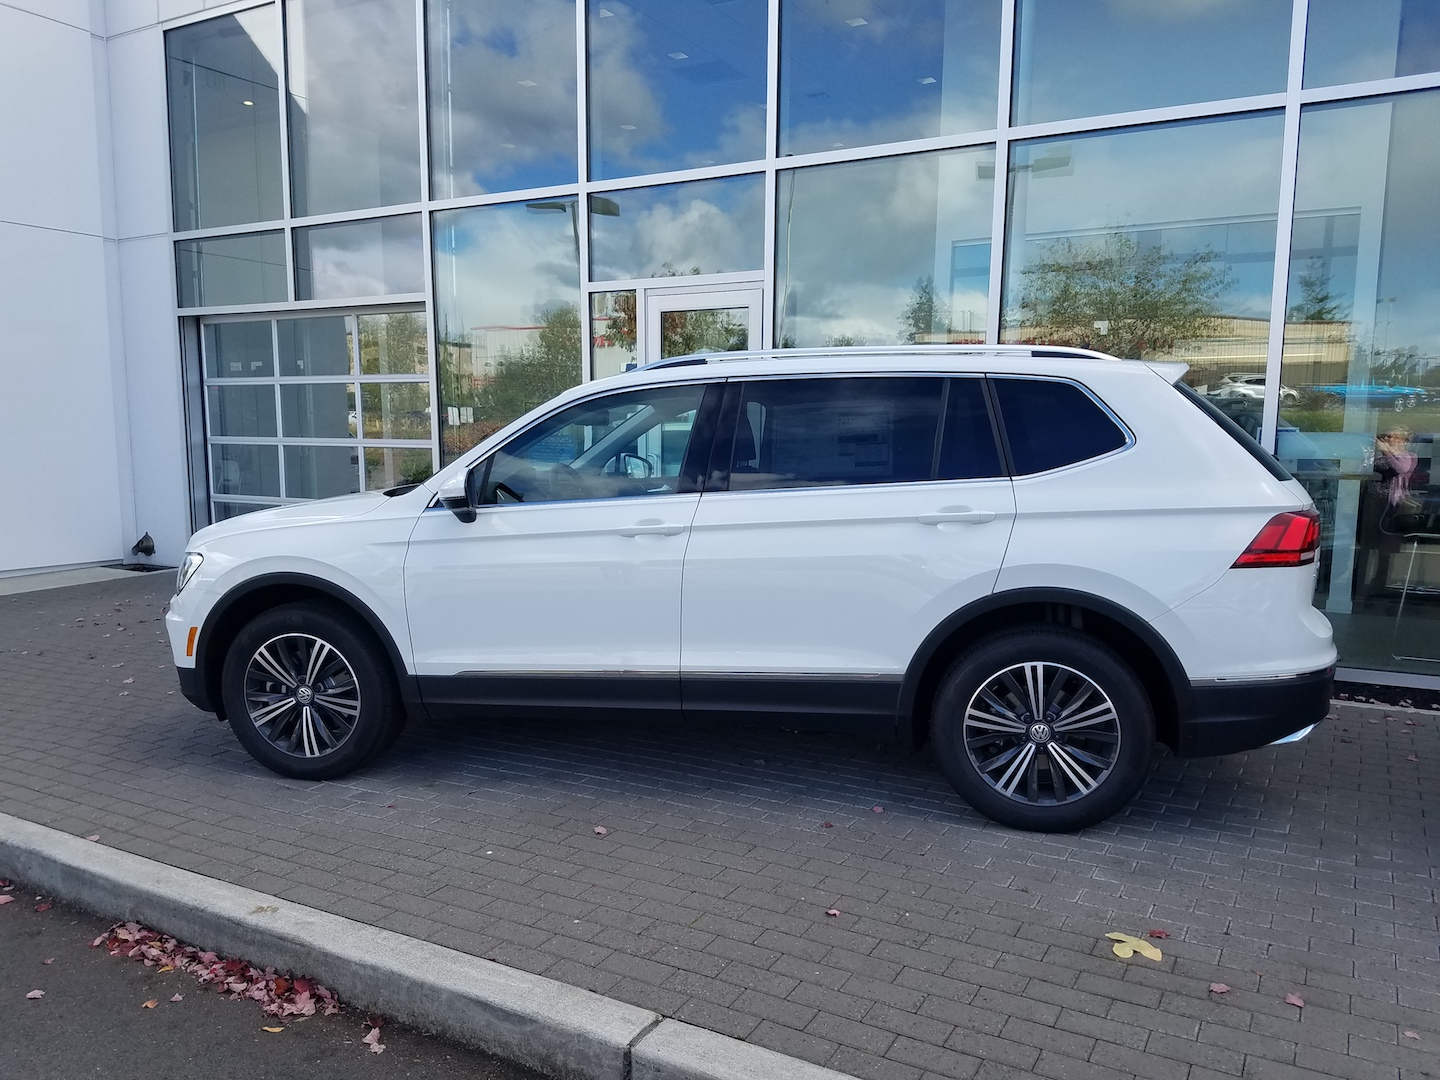 take a ride in volkswagen of olympias new suvs thurstontalk take a ride in volkswagen of olympias